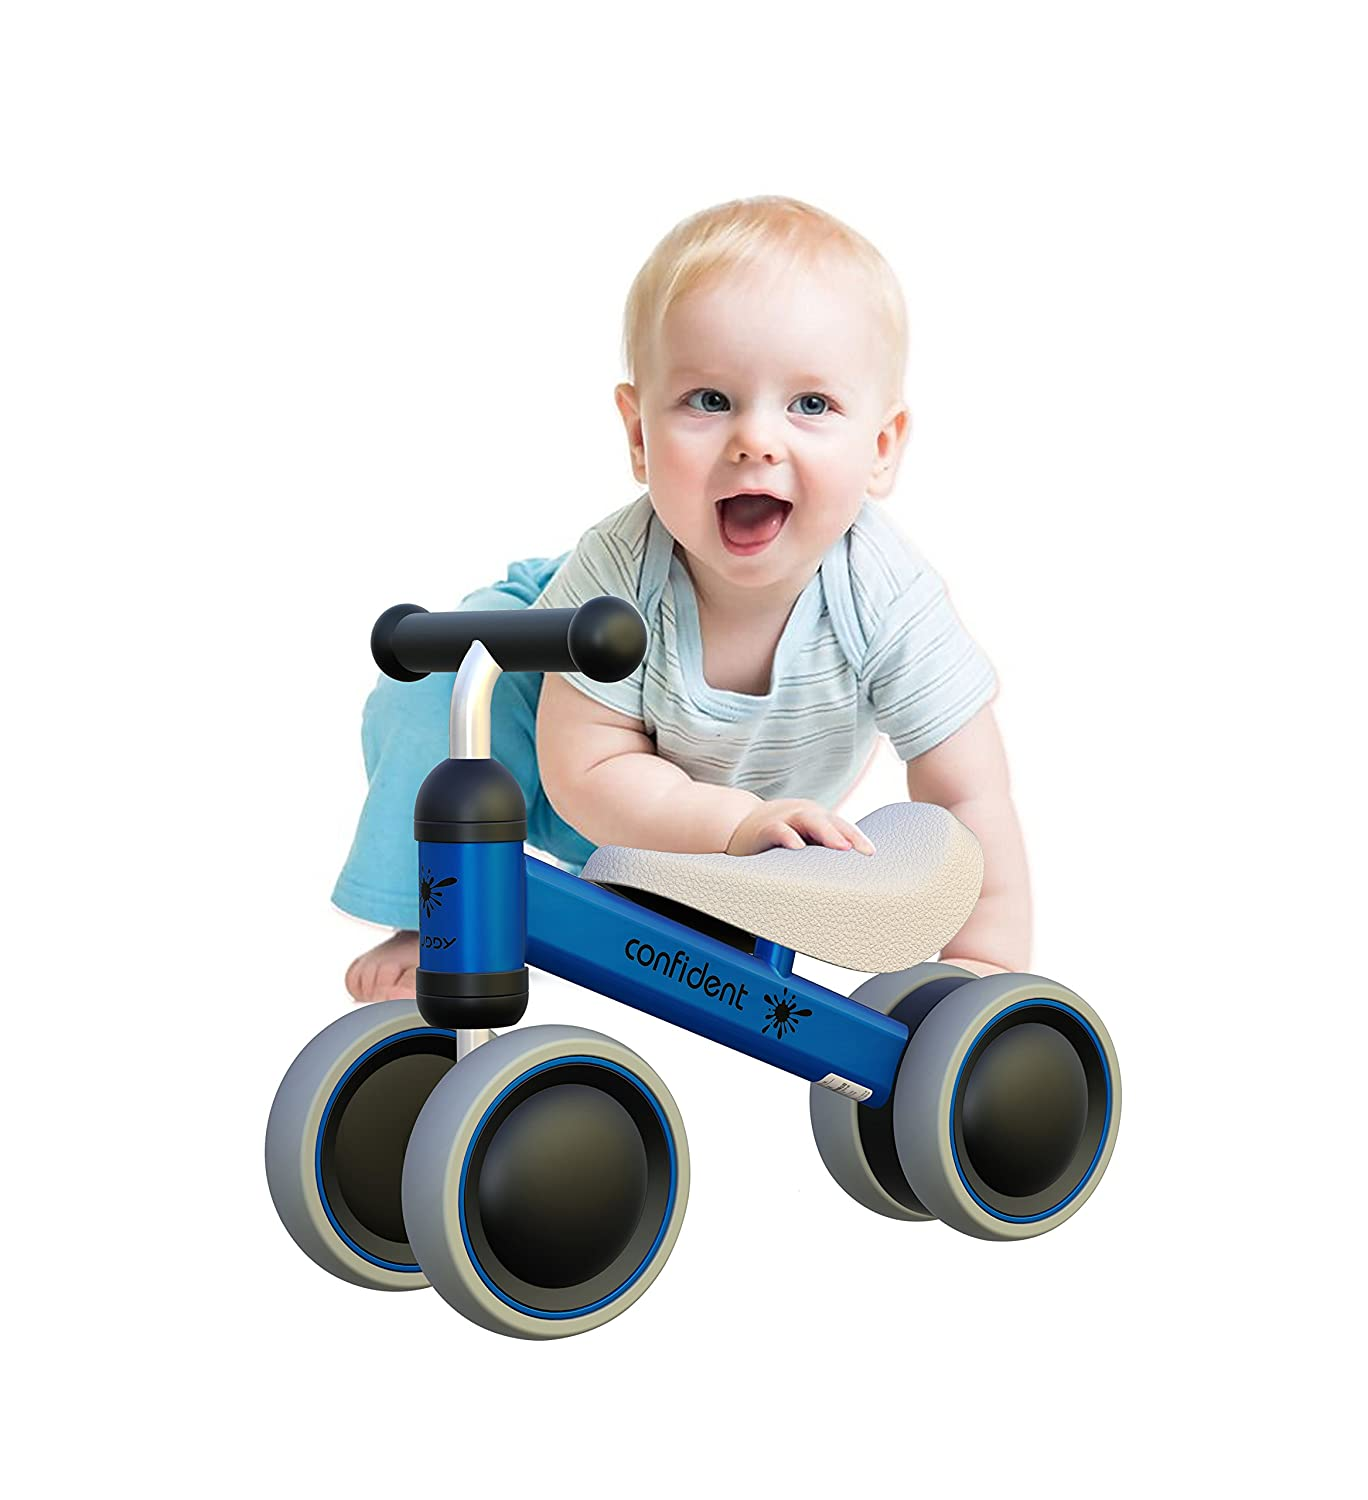 YGJT Baby Balance Bikes Bicycle Baby Walker Toys Rides for 1 Year Boys Girls 10 Months-24 Months Baby's First Bike First Birthday Gift White China